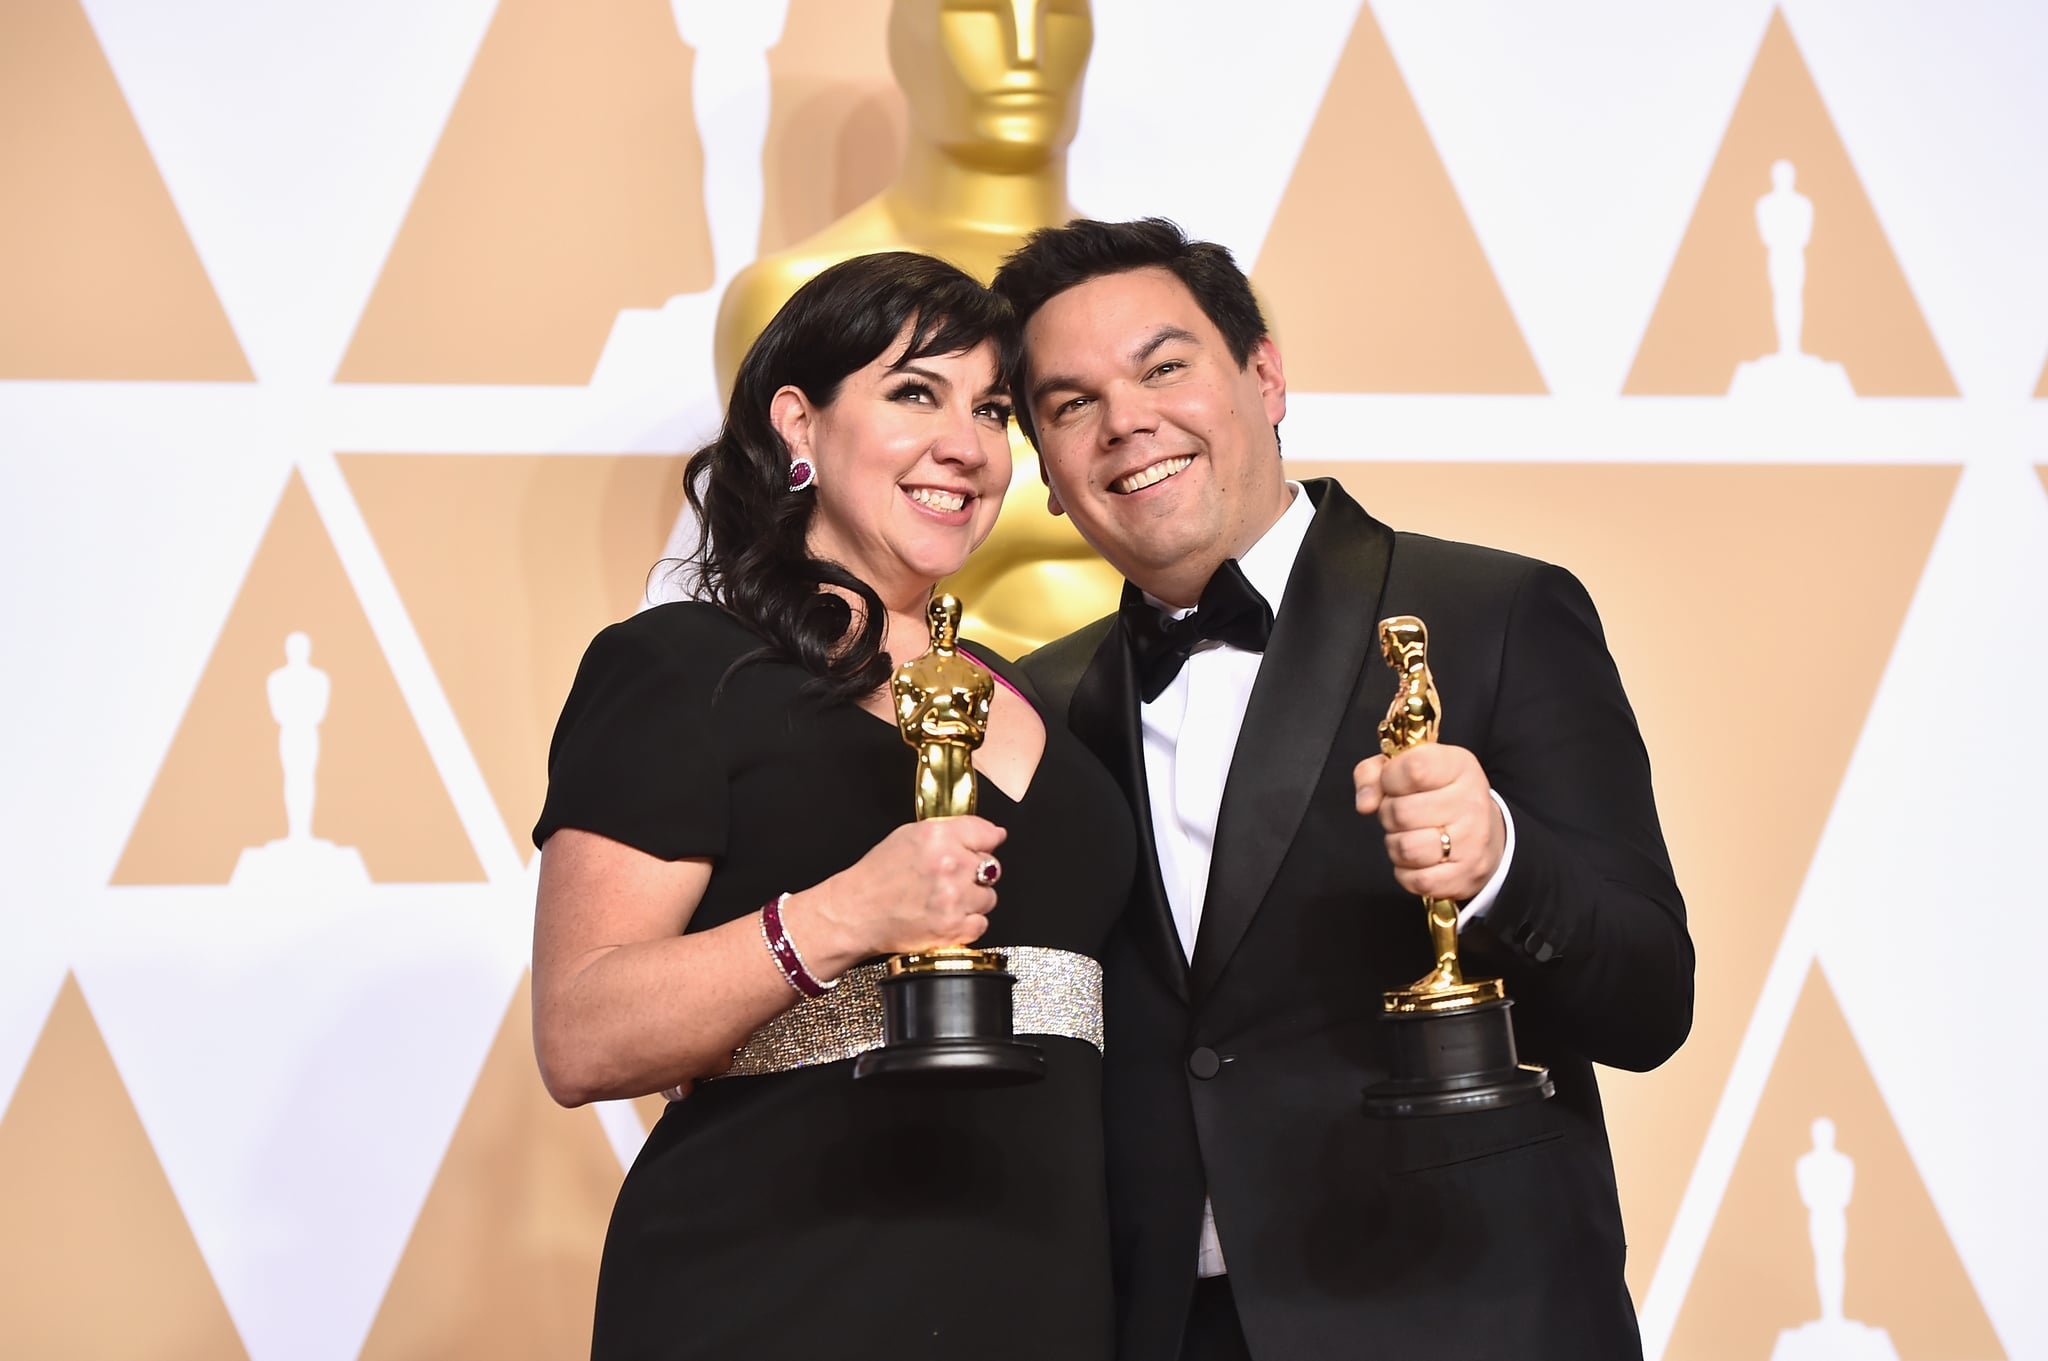 HOLLYWOOD, CA - MARCH 04:  Composers Kristen Anderson-Lopez (L) and Robert Lopez, winners of the Best Original Song award for 'Remember Me' from 'Coco,'  pose in the press room during the 90th Annual Academy Awards at Hollywood & Highland Center on March 4, 2018 in Hollywood, California.  (Photo by Alberto E. Rodriguez/Getty Images)